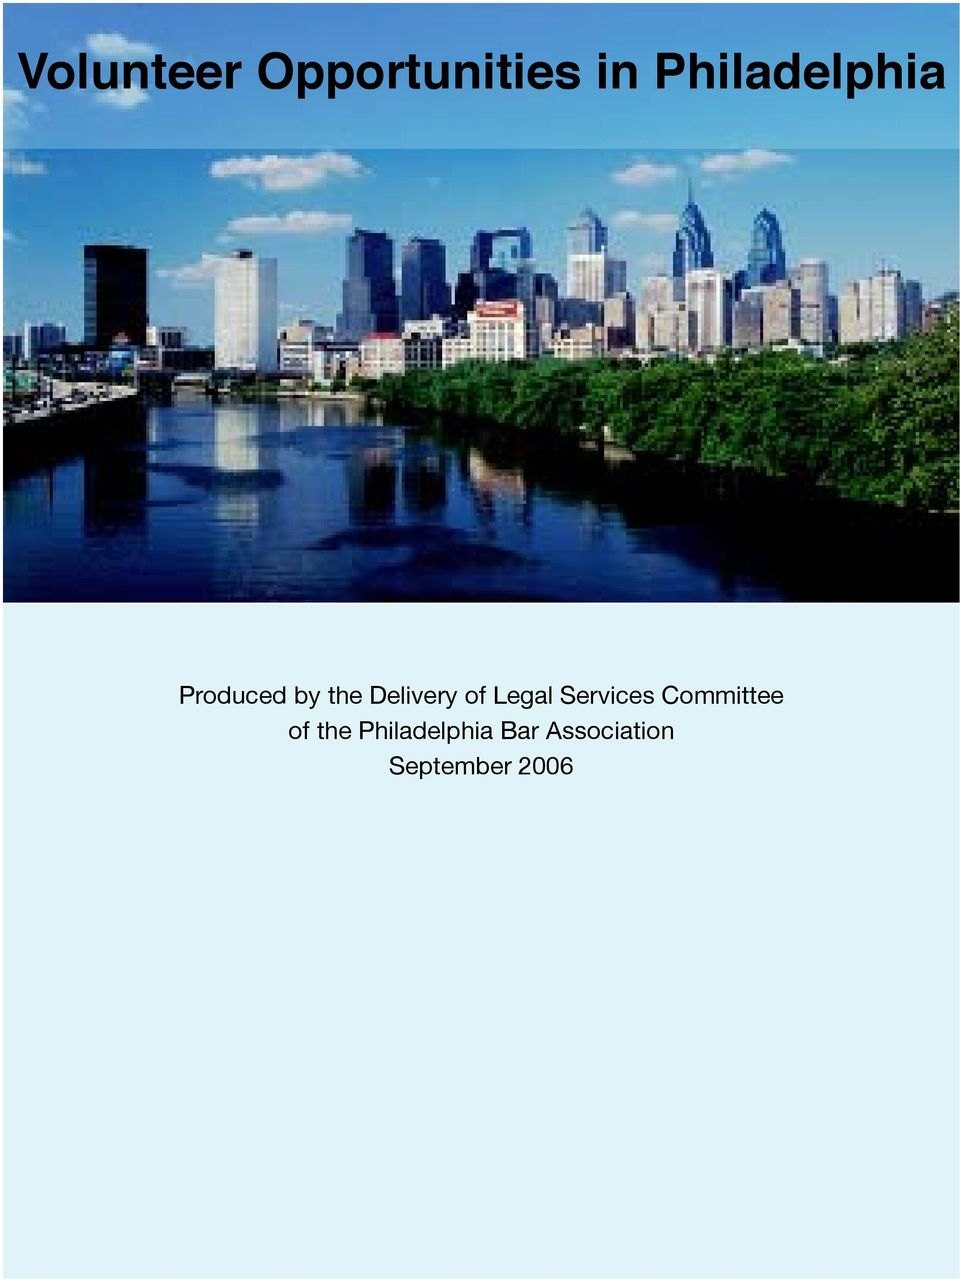 Delivery of Legal Services